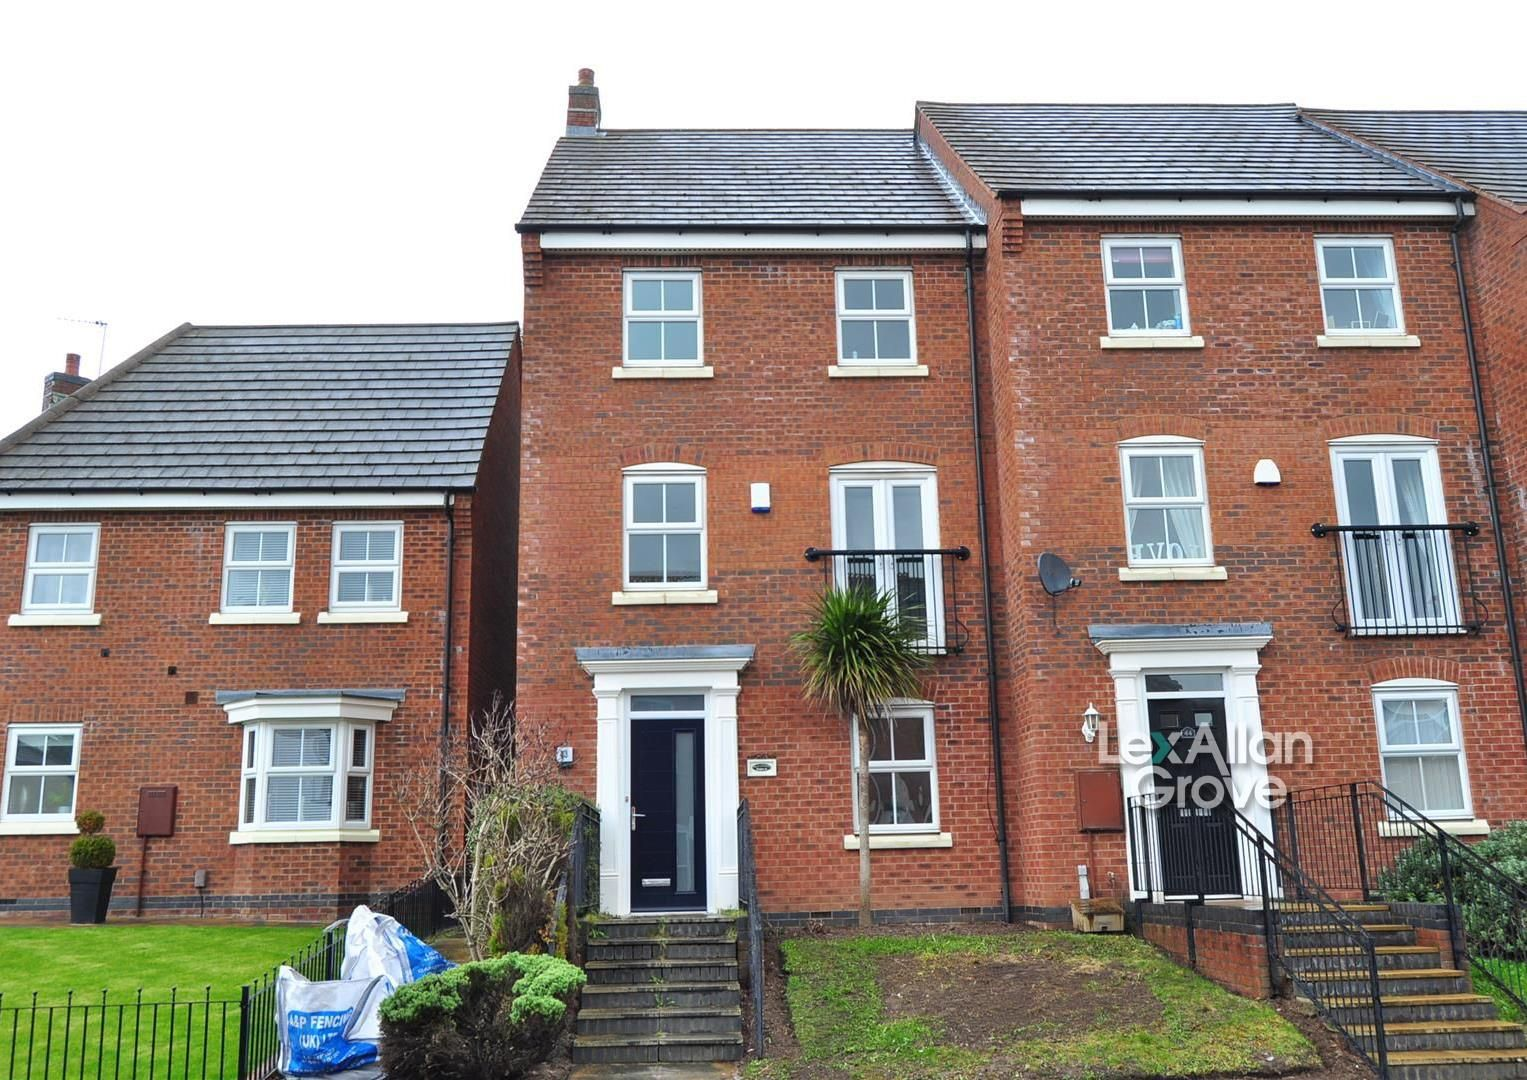 4 bed town-house for sale, B65